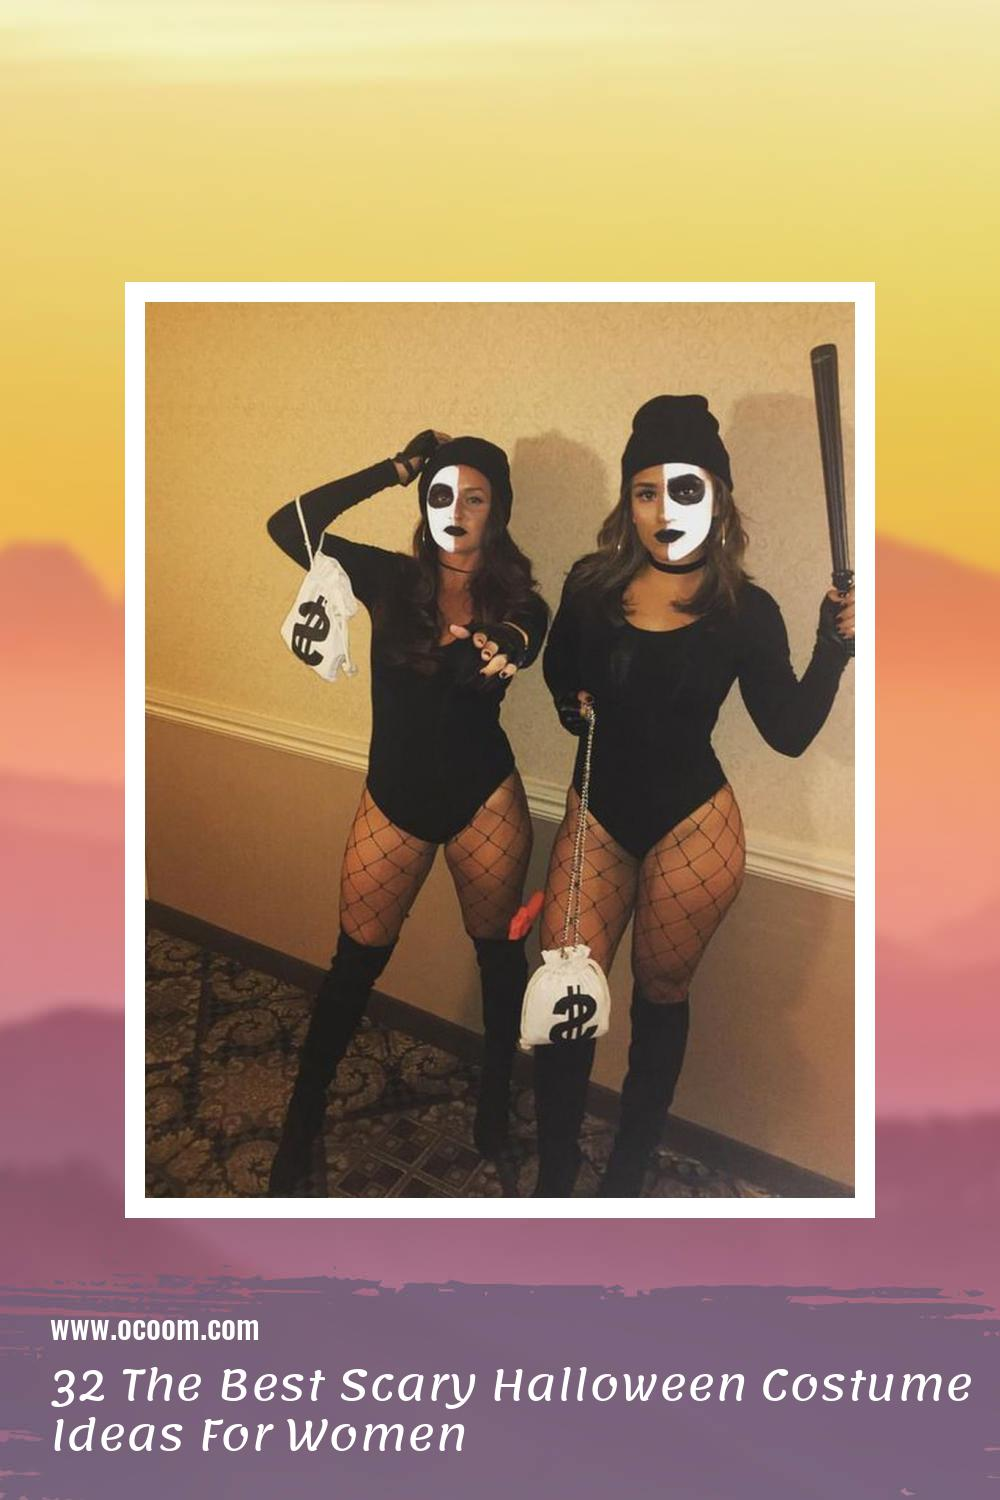 32 The Best Scary Halloween Costume Ideas For Women 55